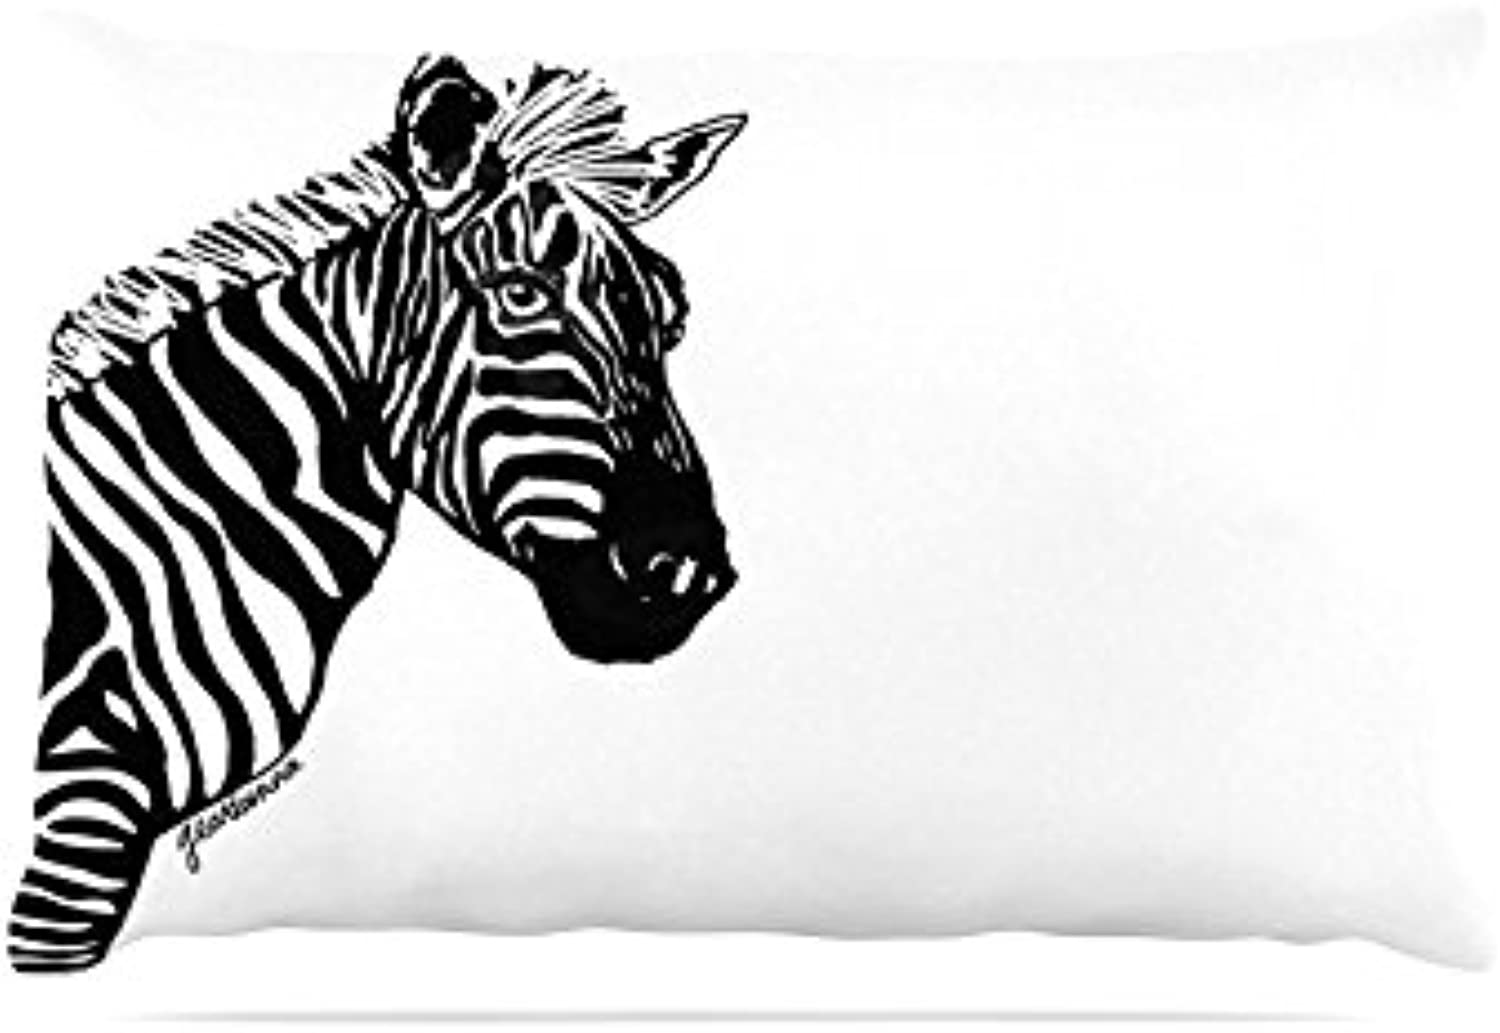 Kess InHouse Geordanna CorderoFields My Zebra Head  Black White Fleece Dog Bed, 30 by 40